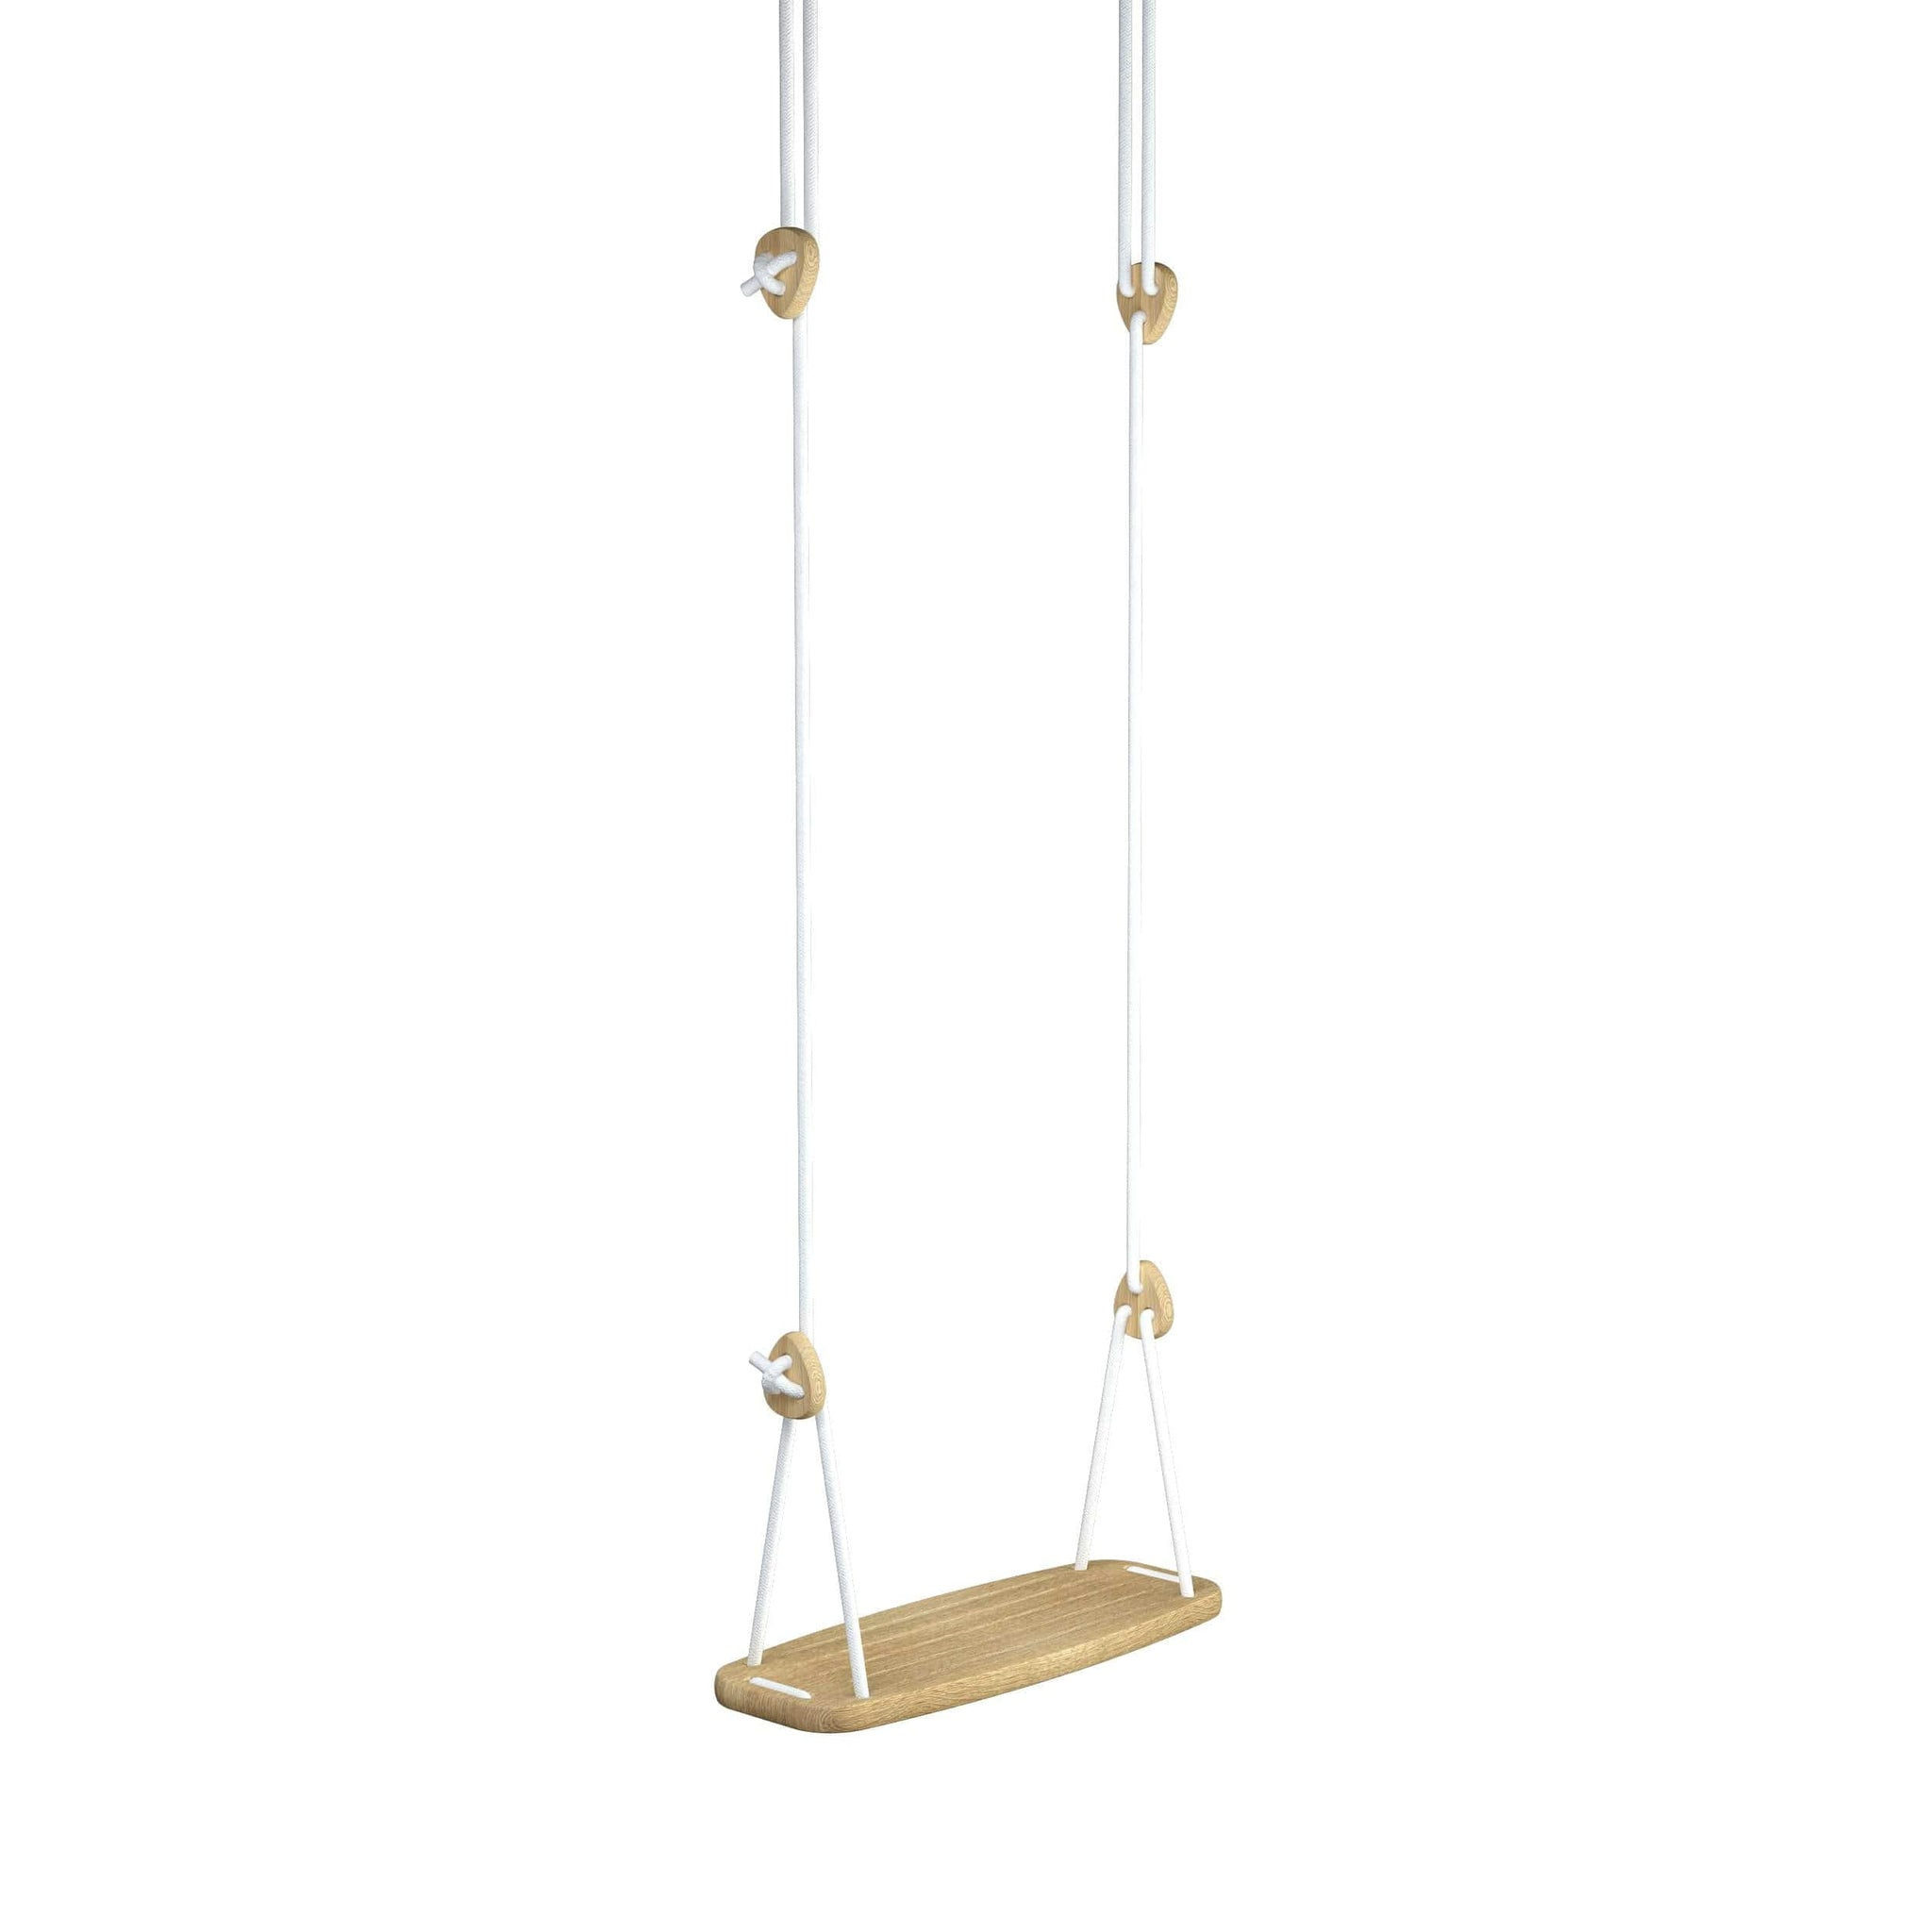 LILLAGUNGA CLASSIC SWING, OAK, GREY ROPES - Hello Little Birdie